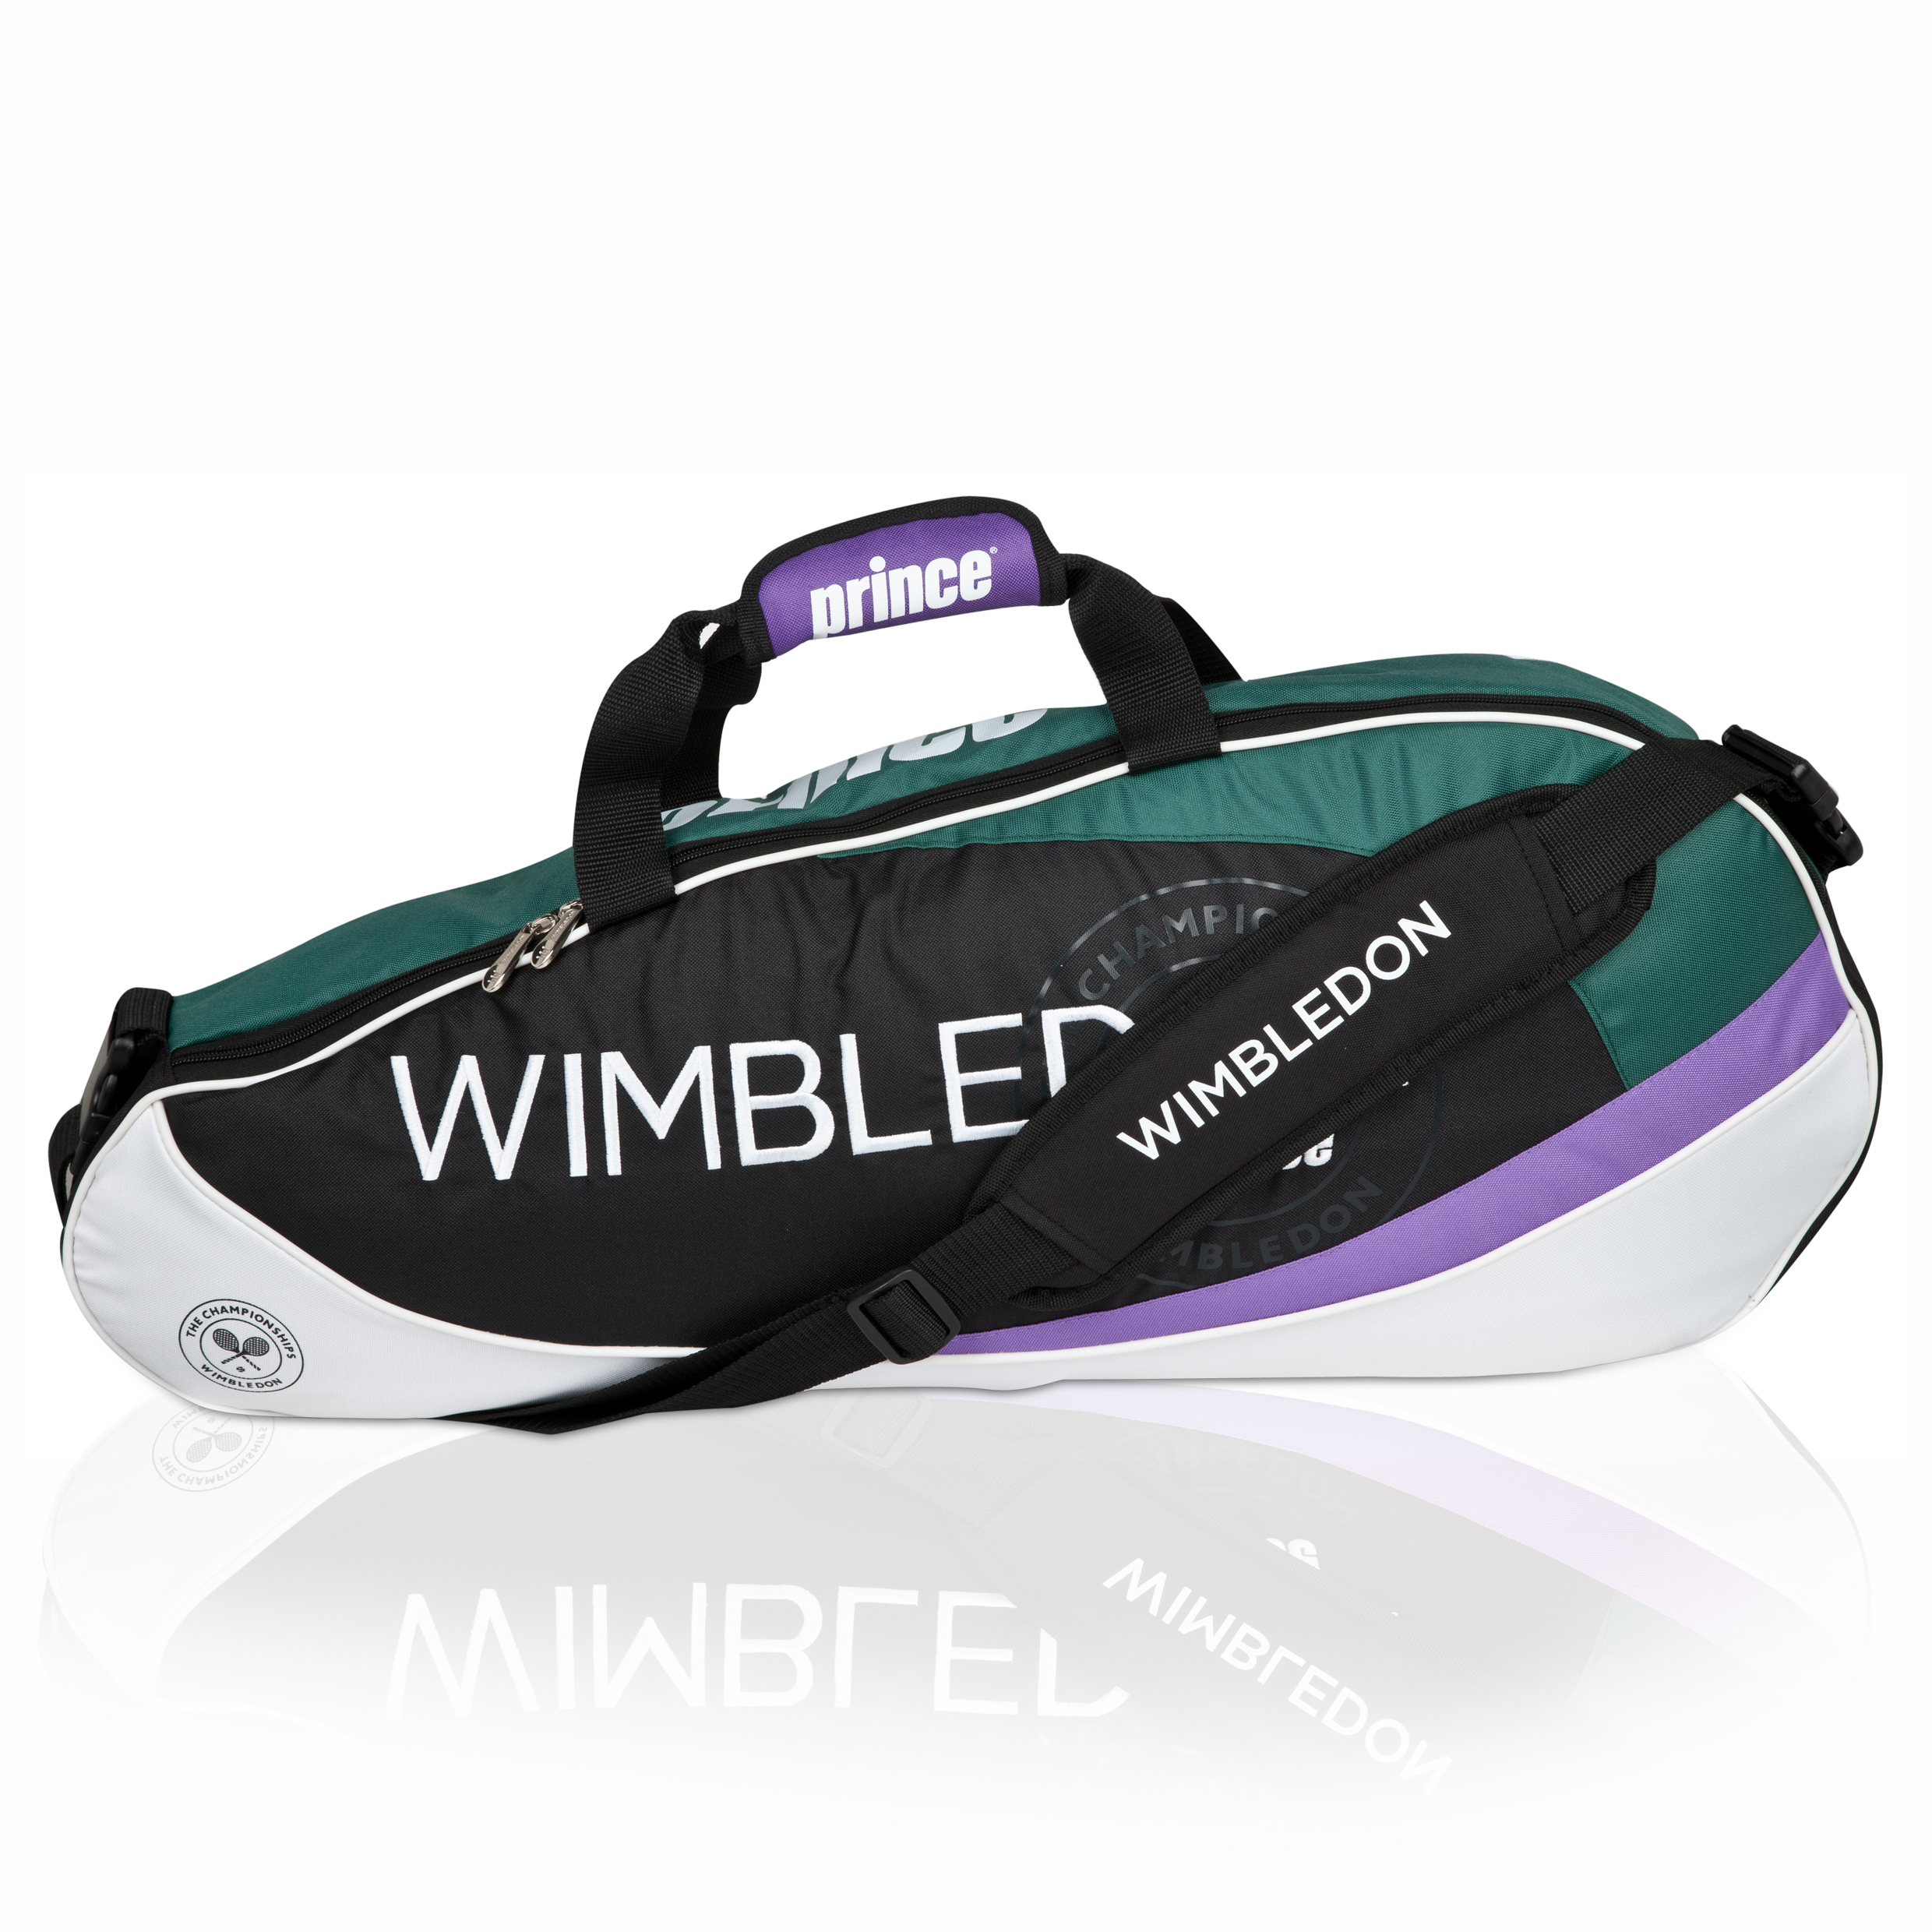 Wimbledon By Prince Grass Court Collection 3 Pack Racket Bag